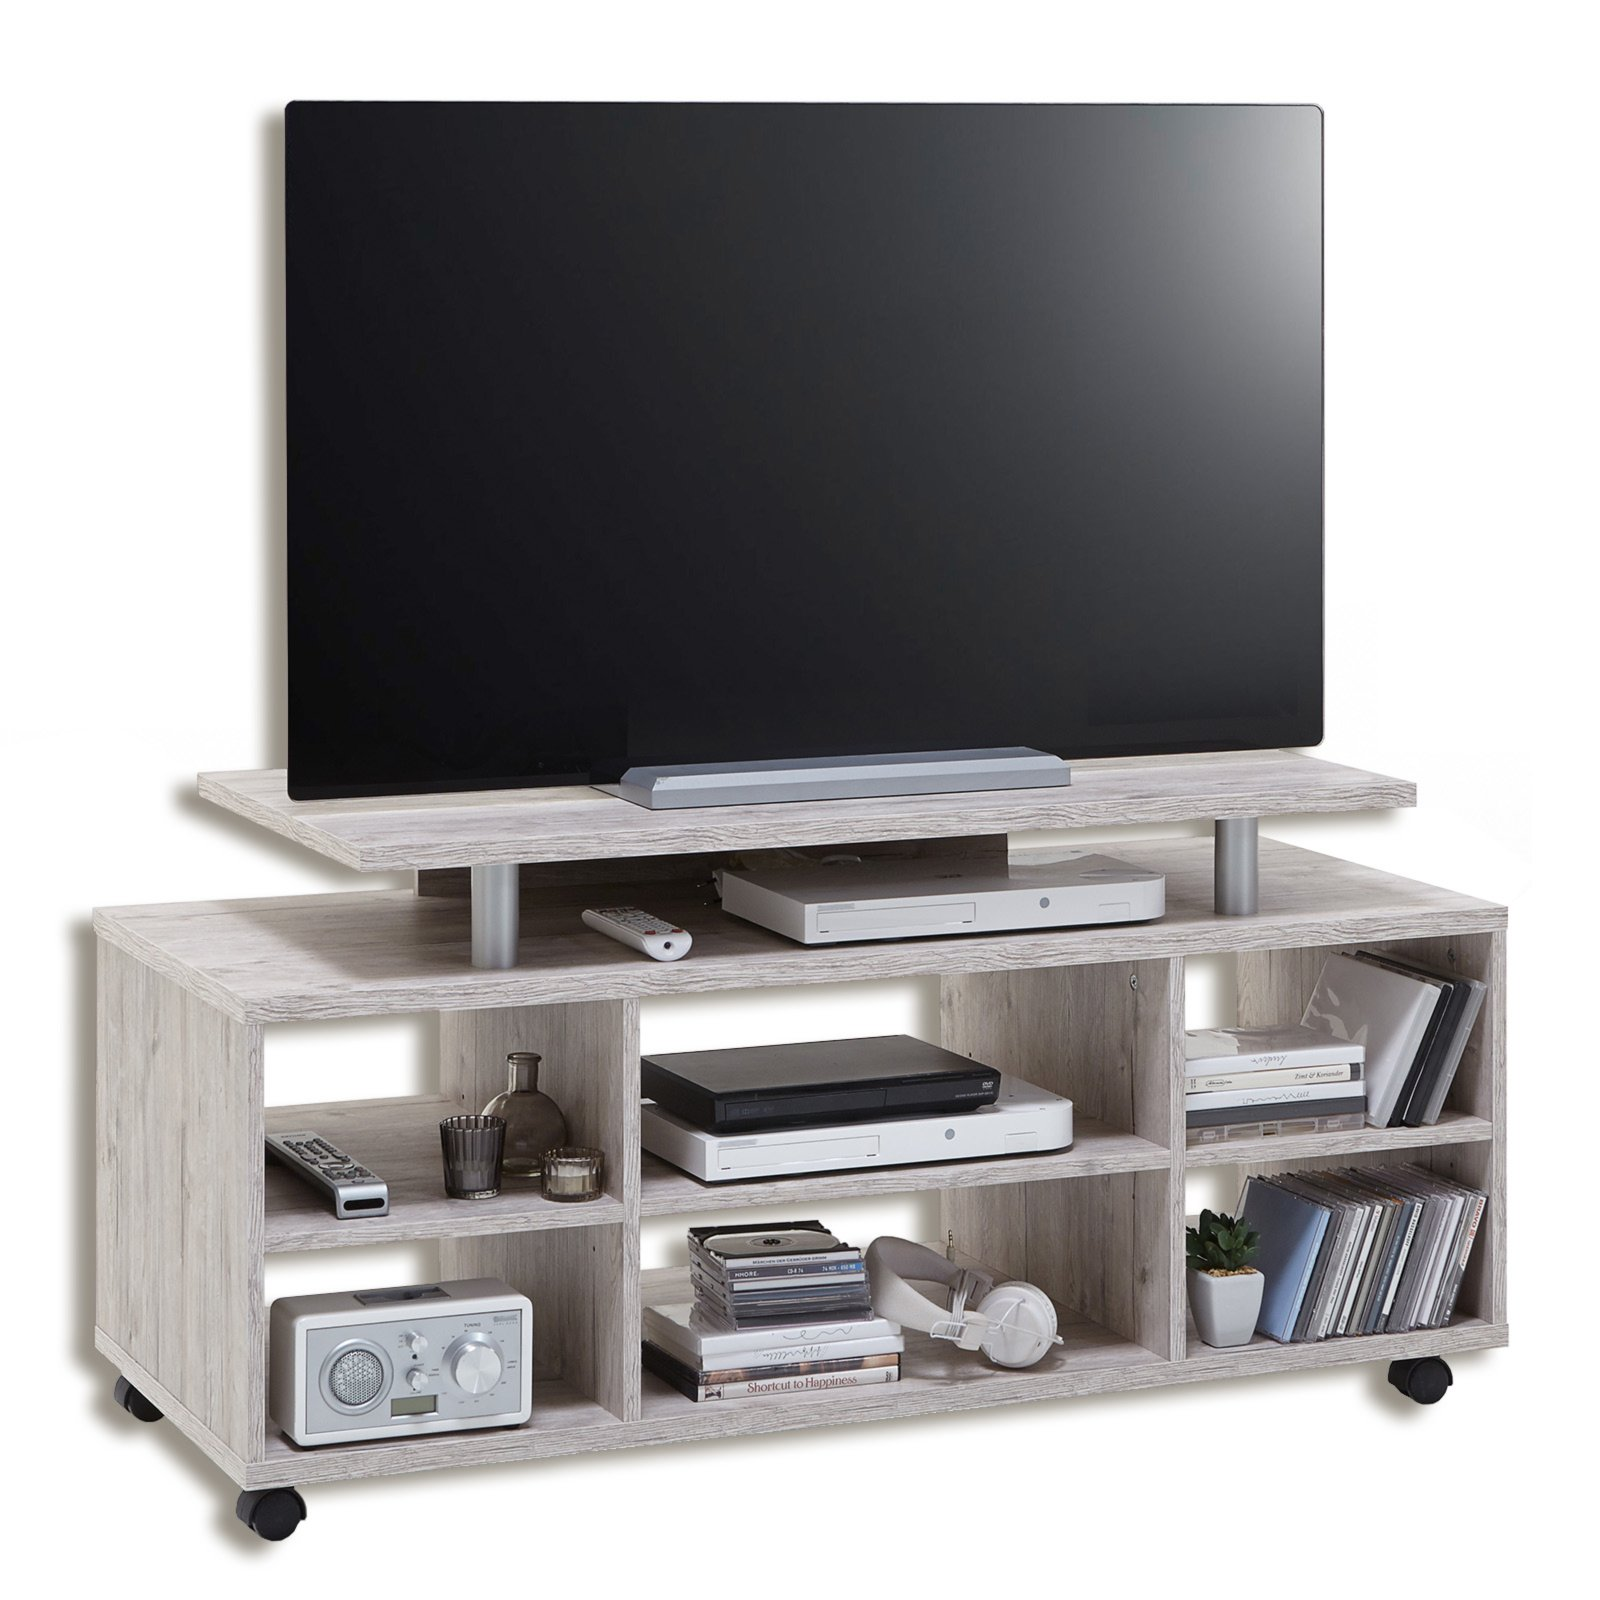 tv hifi rack variant 21 sandeiche mit rollen tv racks tv hifi m bel m bel roller. Black Bedroom Furniture Sets. Home Design Ideas